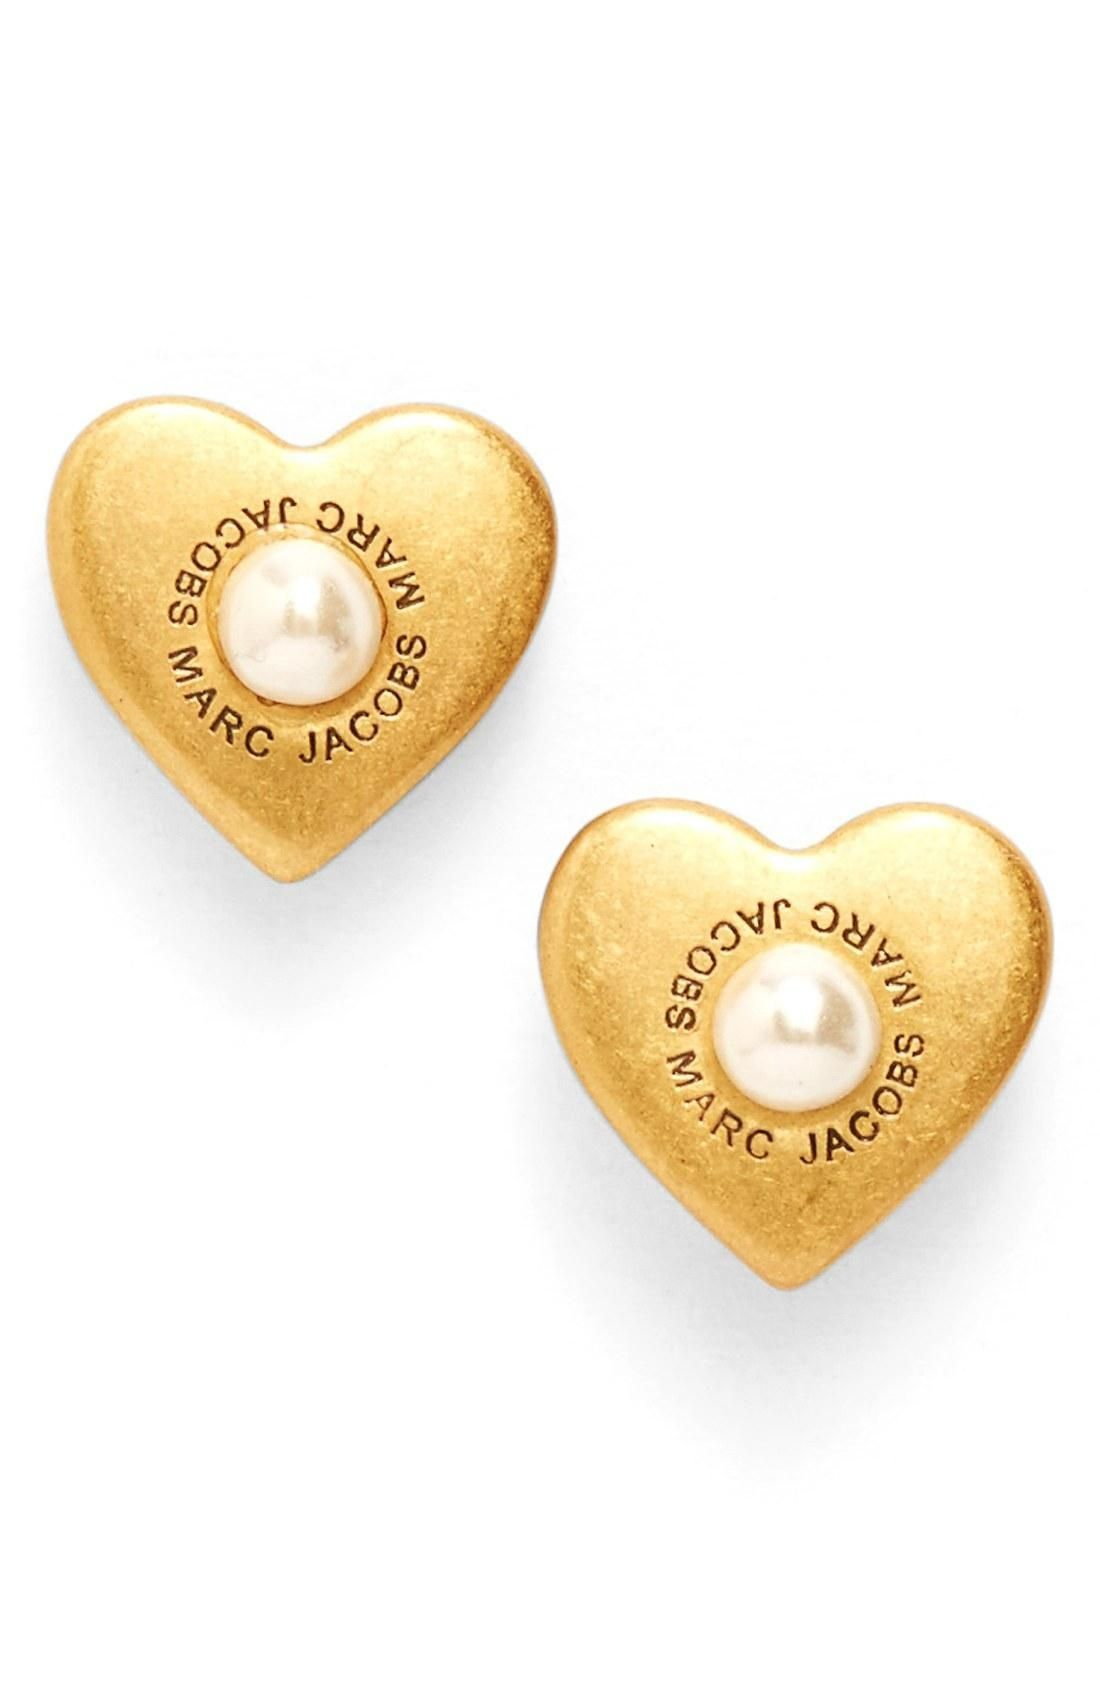 ae8b6c064 MARC JACOBS Faux Pearl Heart Stud Earrings - Brought to you by Avarsha.com